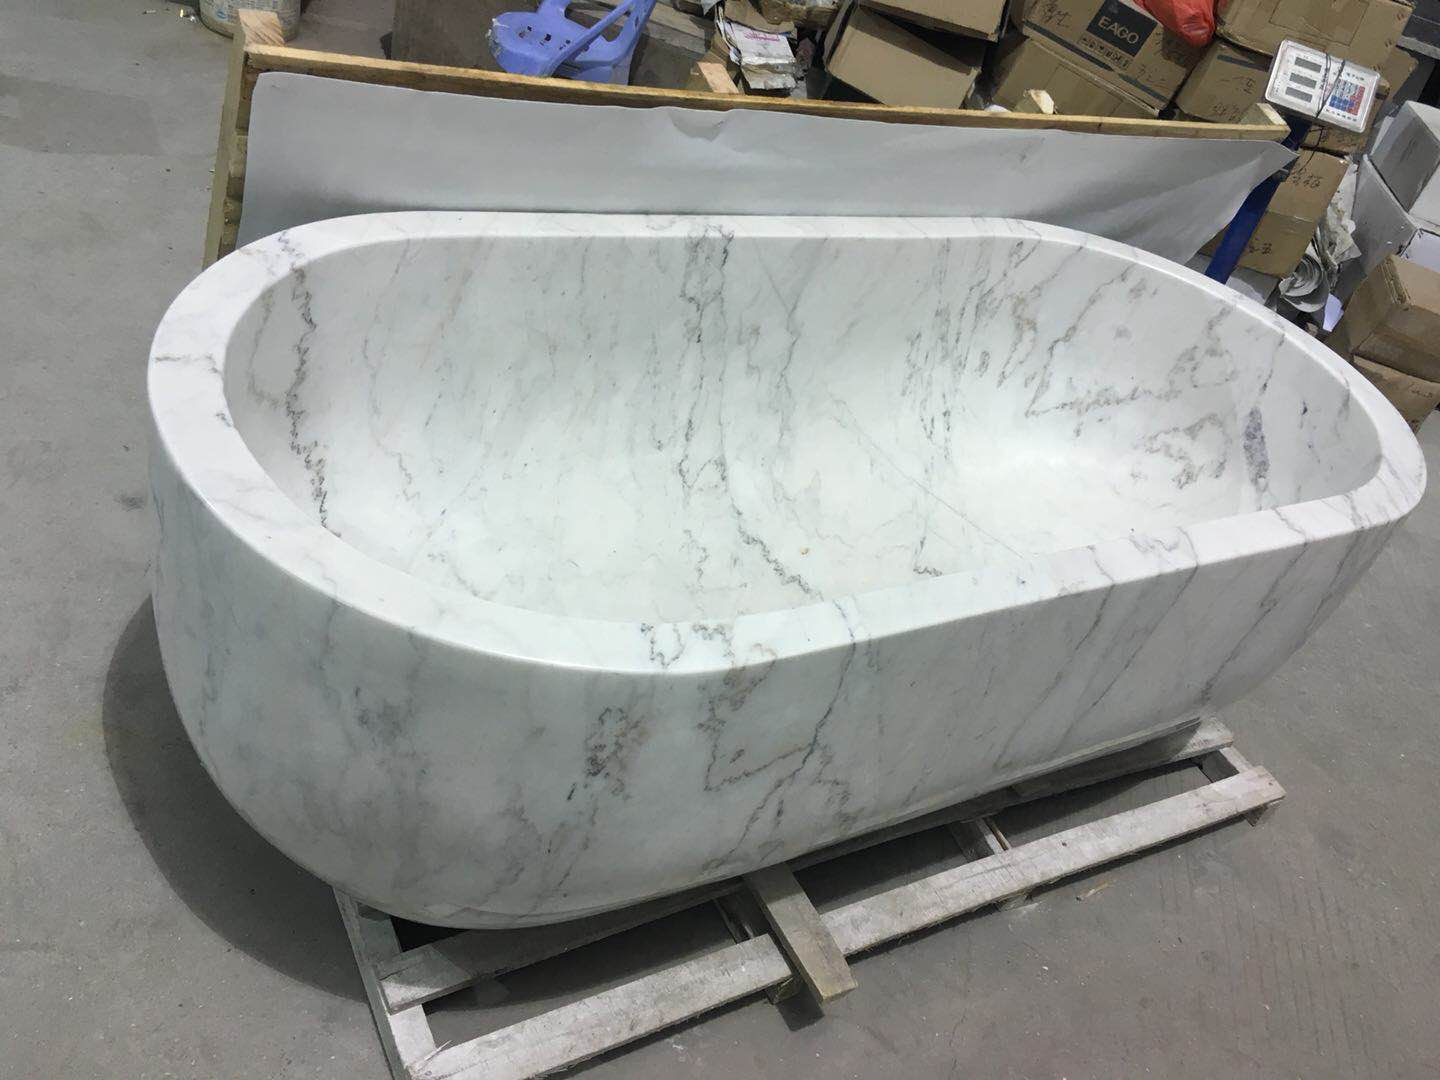 marble bathtub price,artificial marble bathtub,white marble bathtub,white marble stone bathtub for sale,carved marble bathtub,cultured marble freestanding bathtub